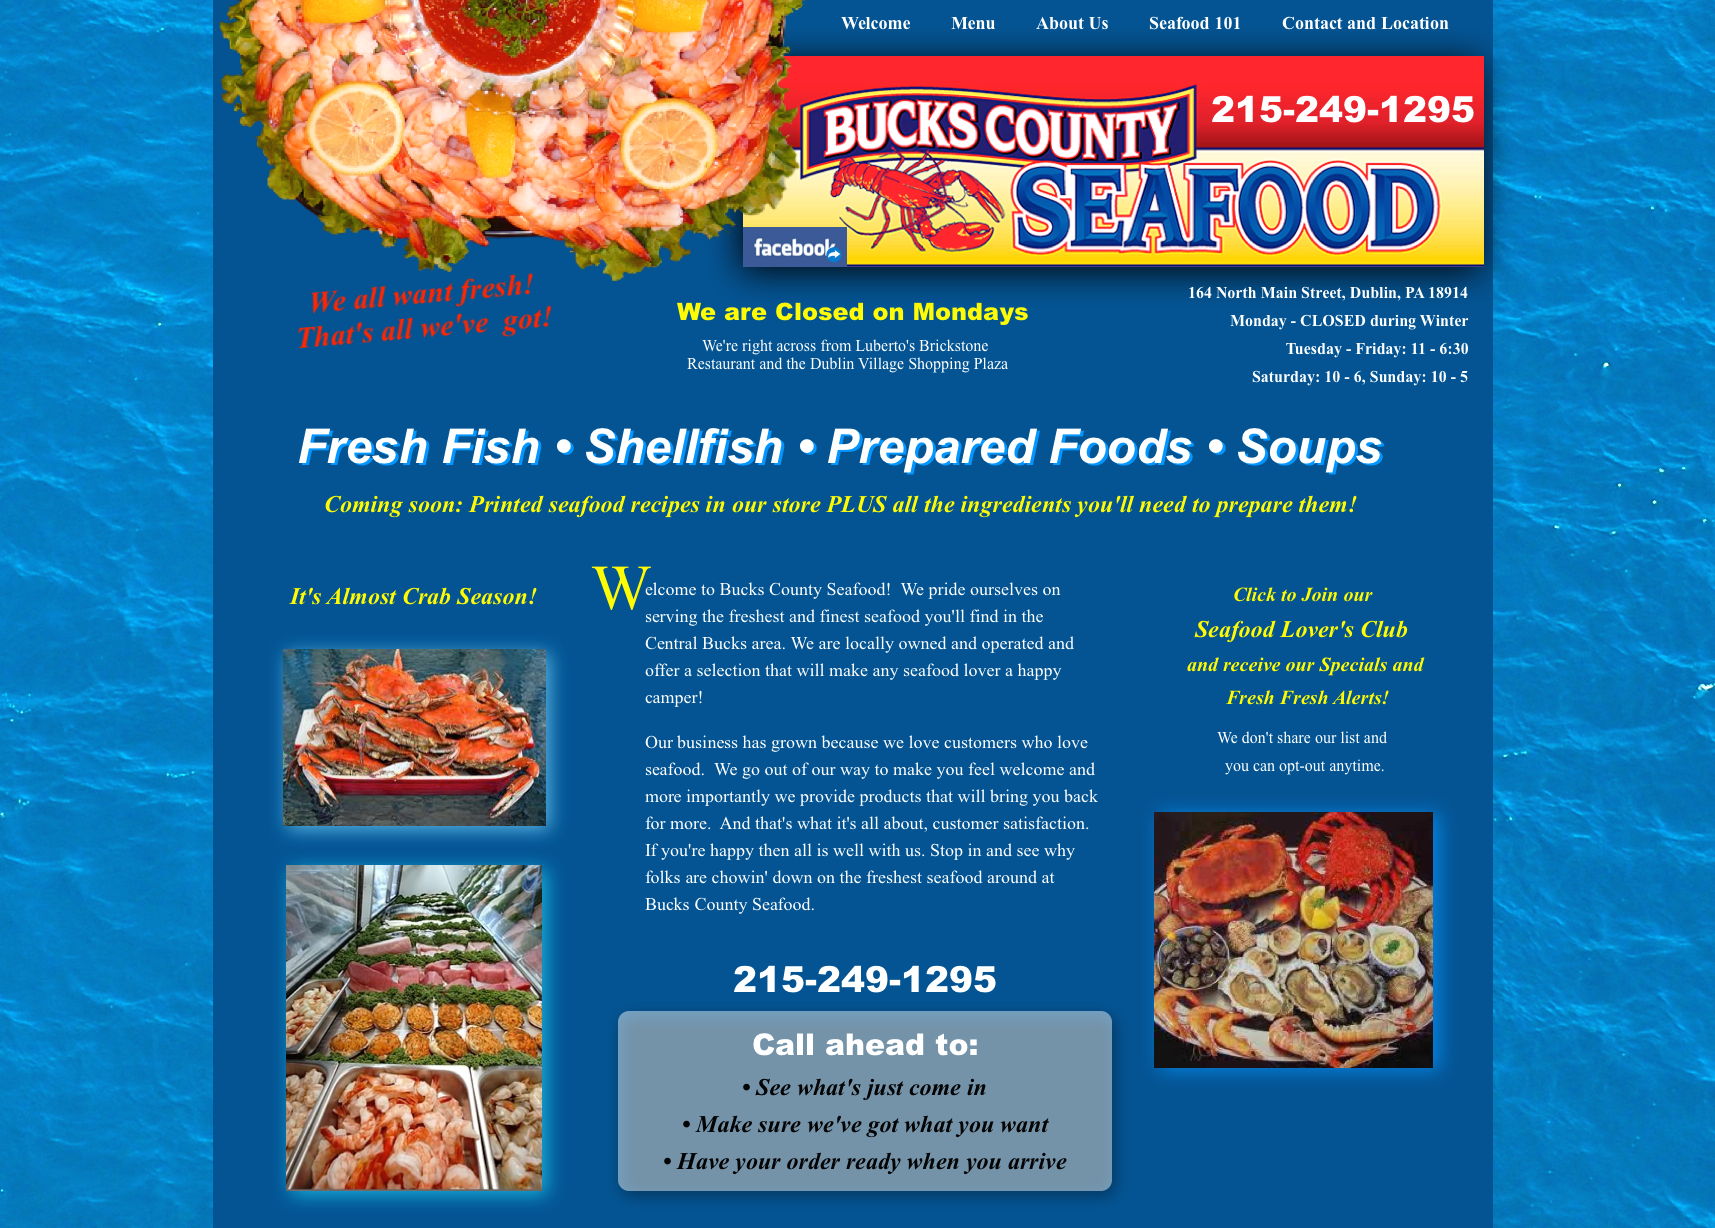 Bucks County Seafood